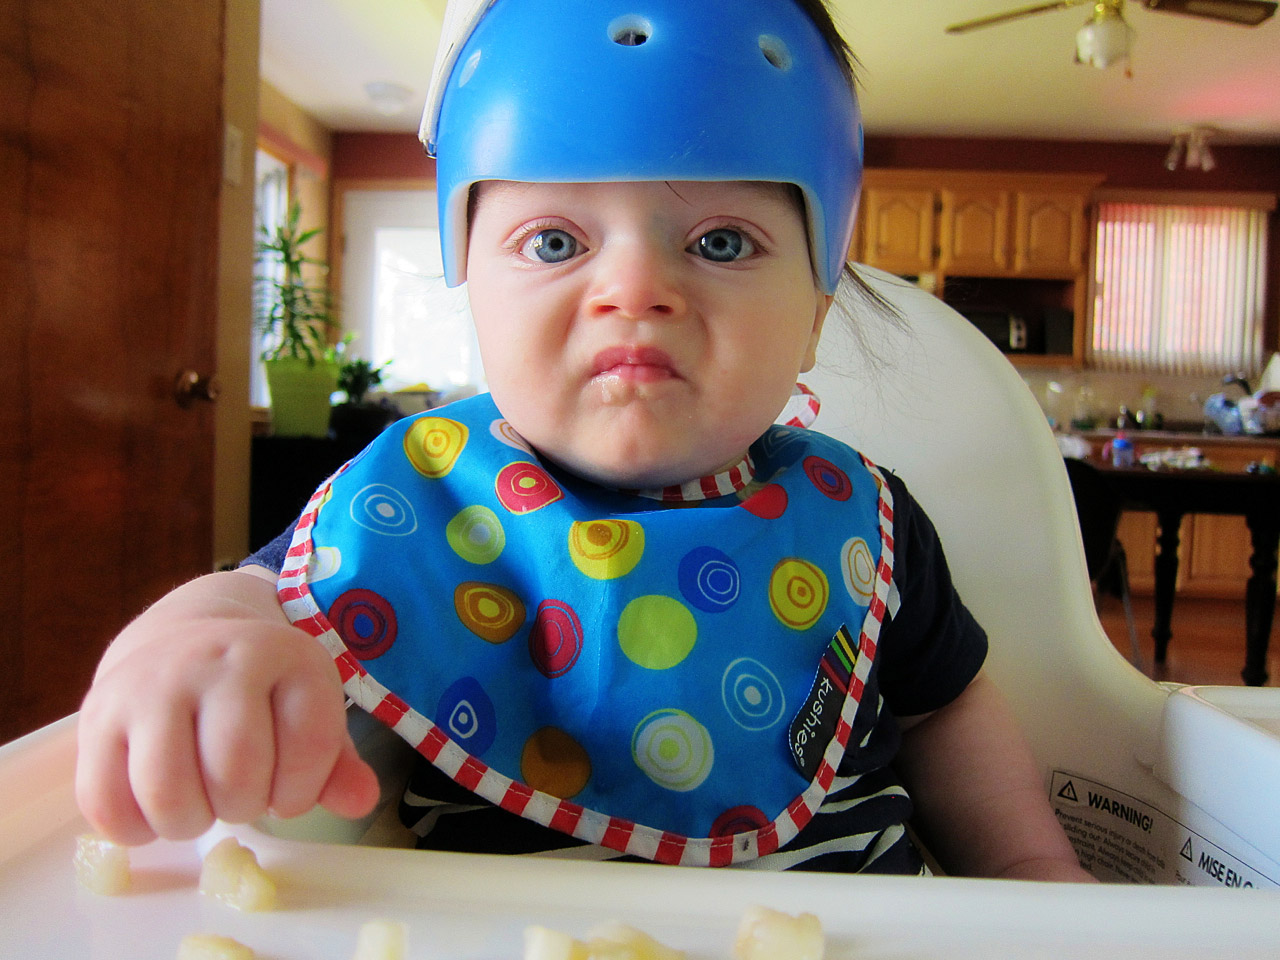 Boo wearing his helmet at his highchair